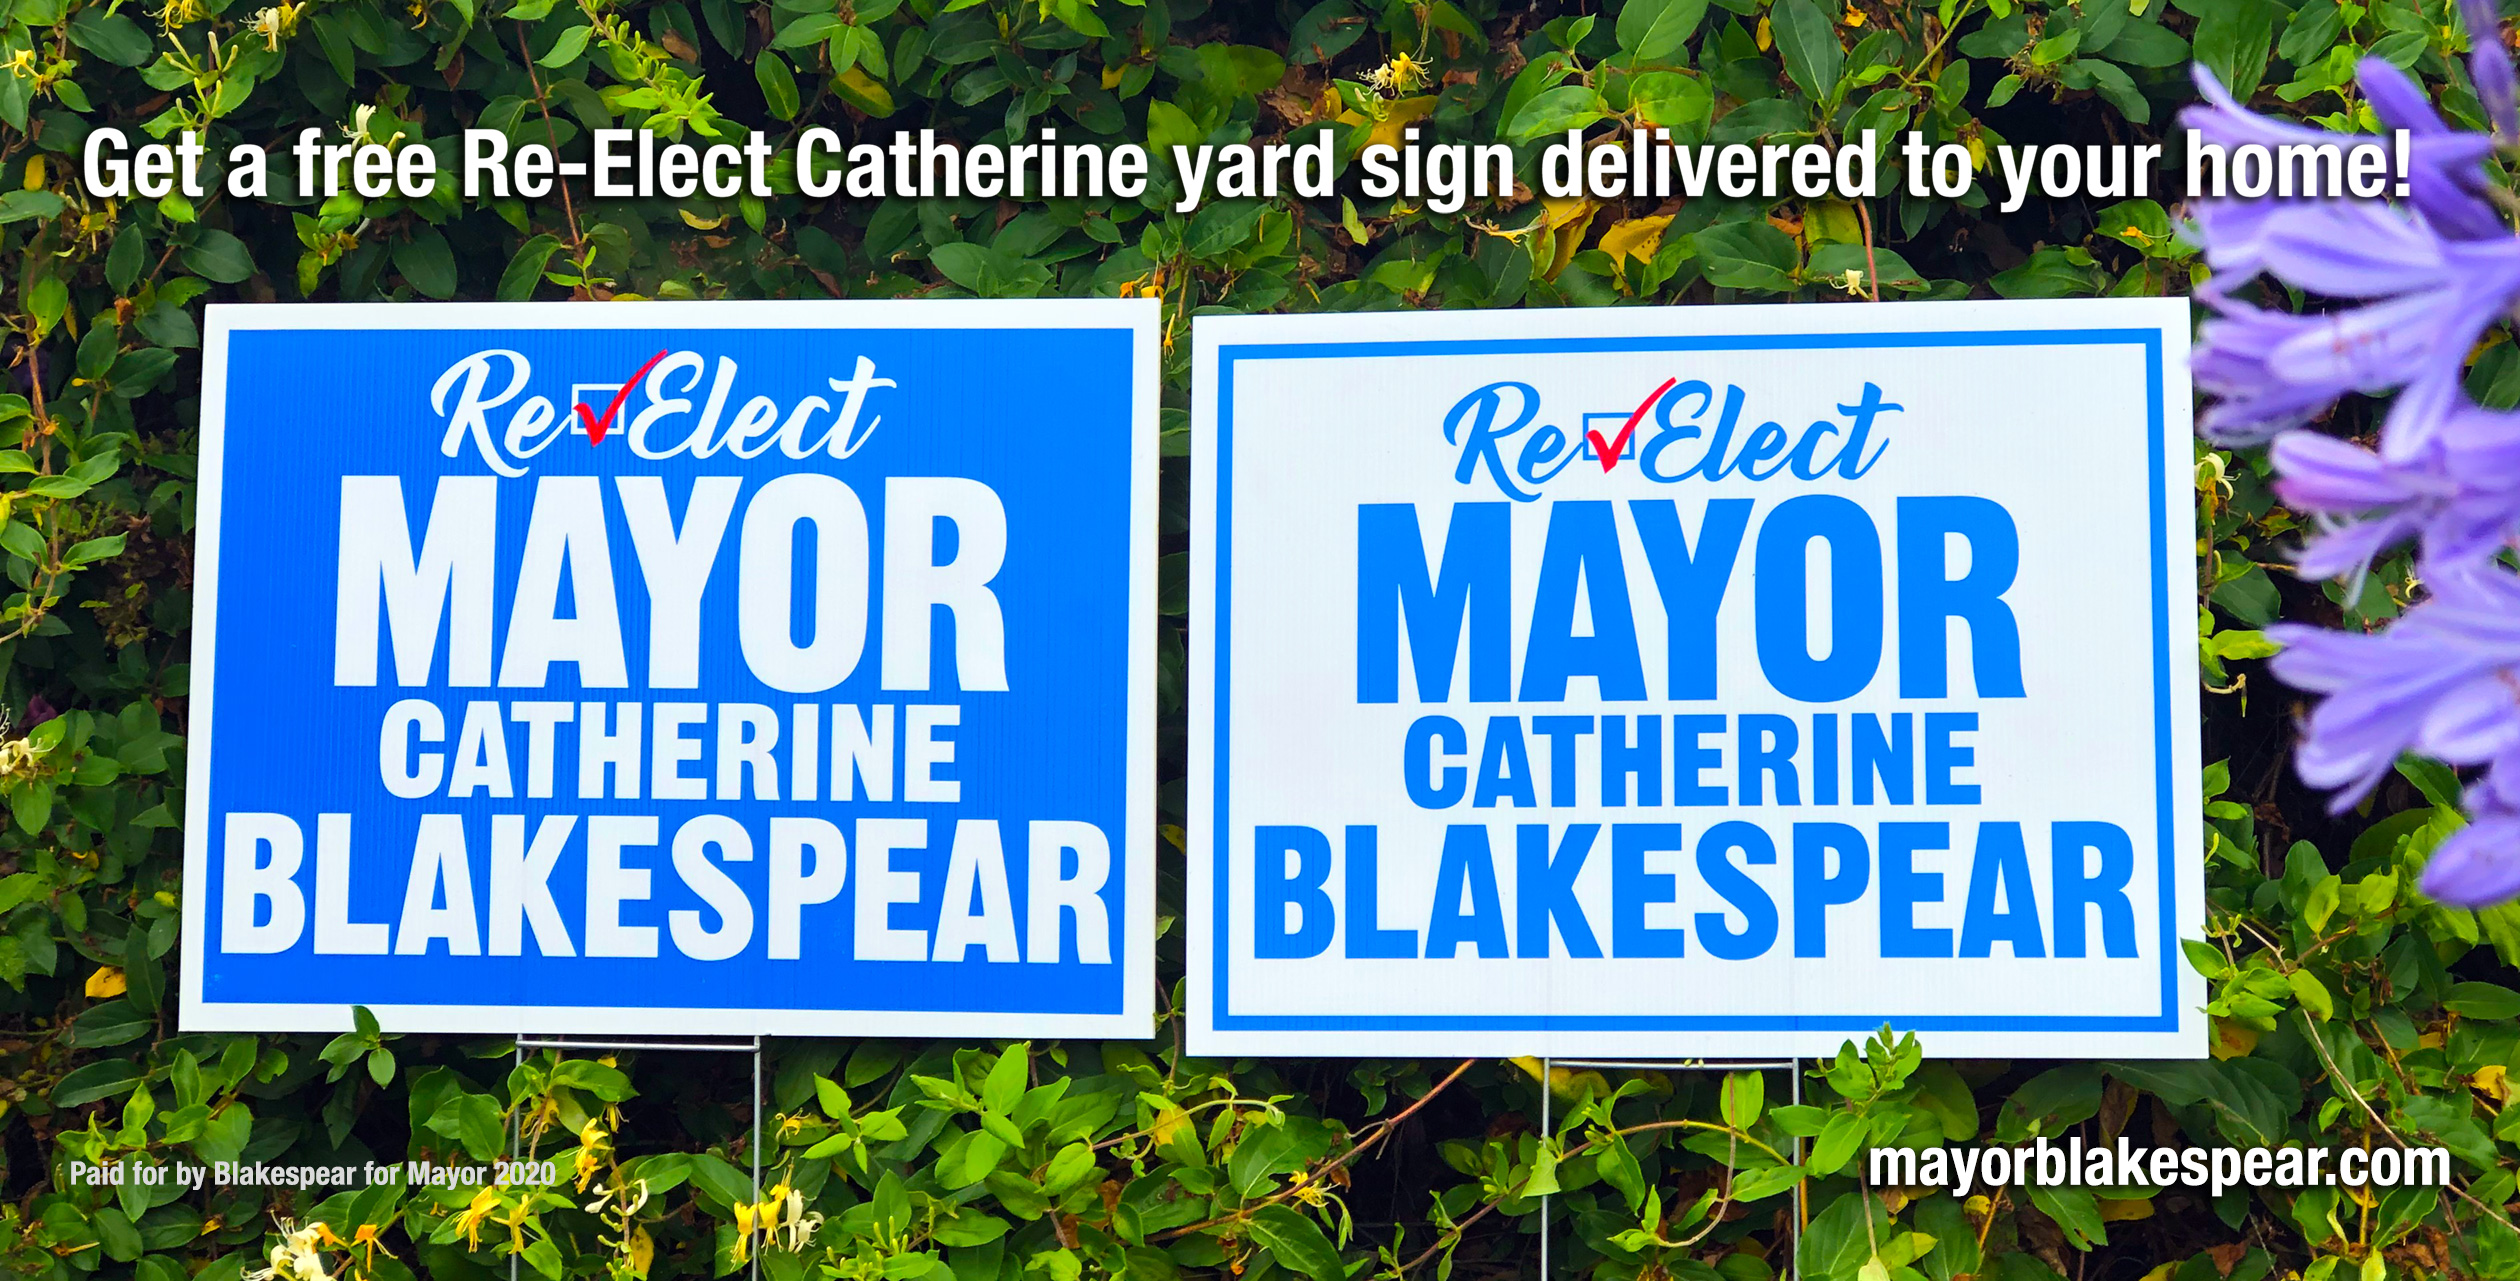 Re-Elect Mayor Blakespear!